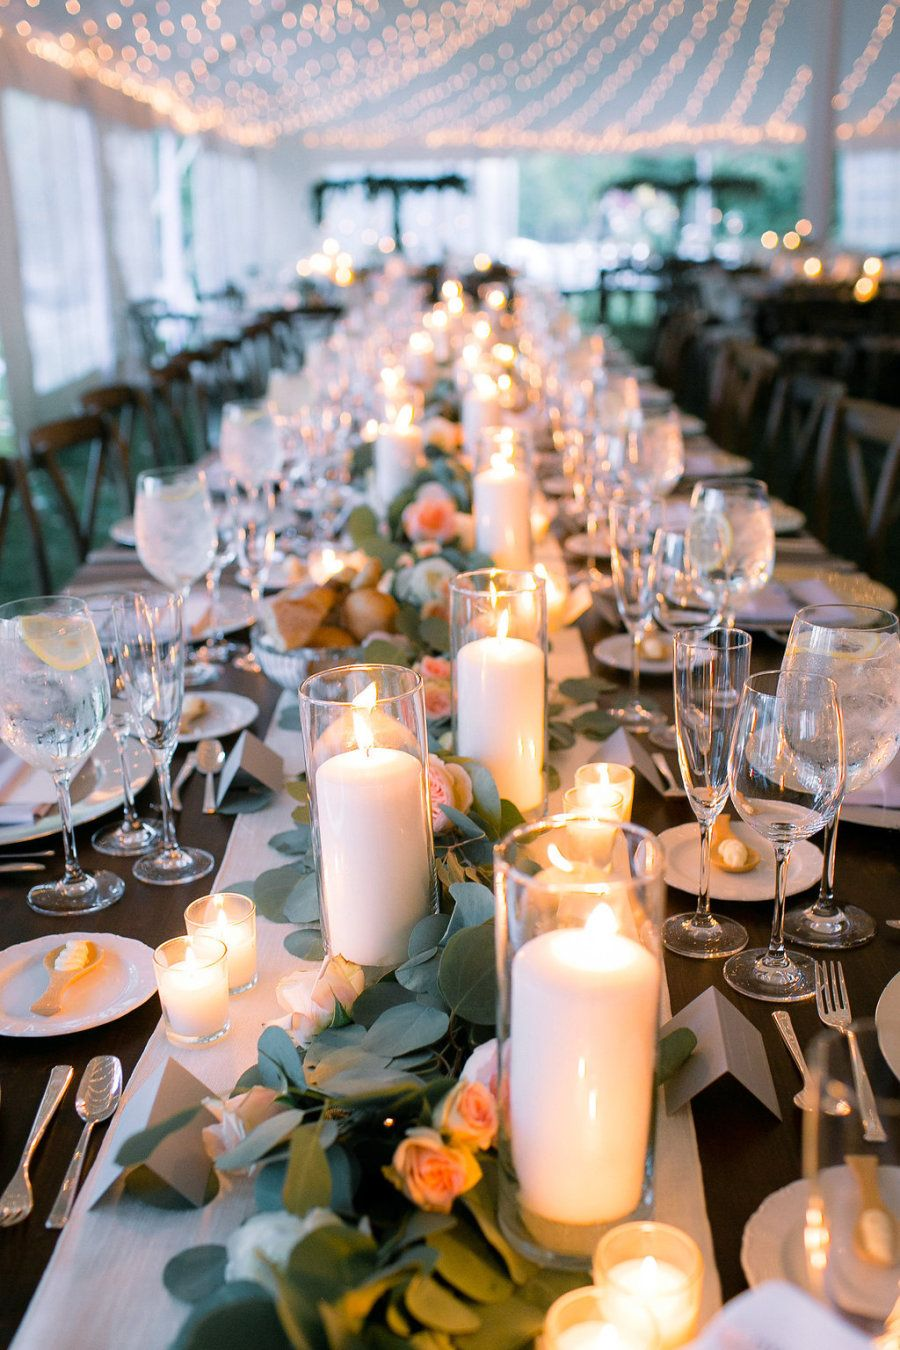 pictures GALLERY: WEDDING TABLE DECOR